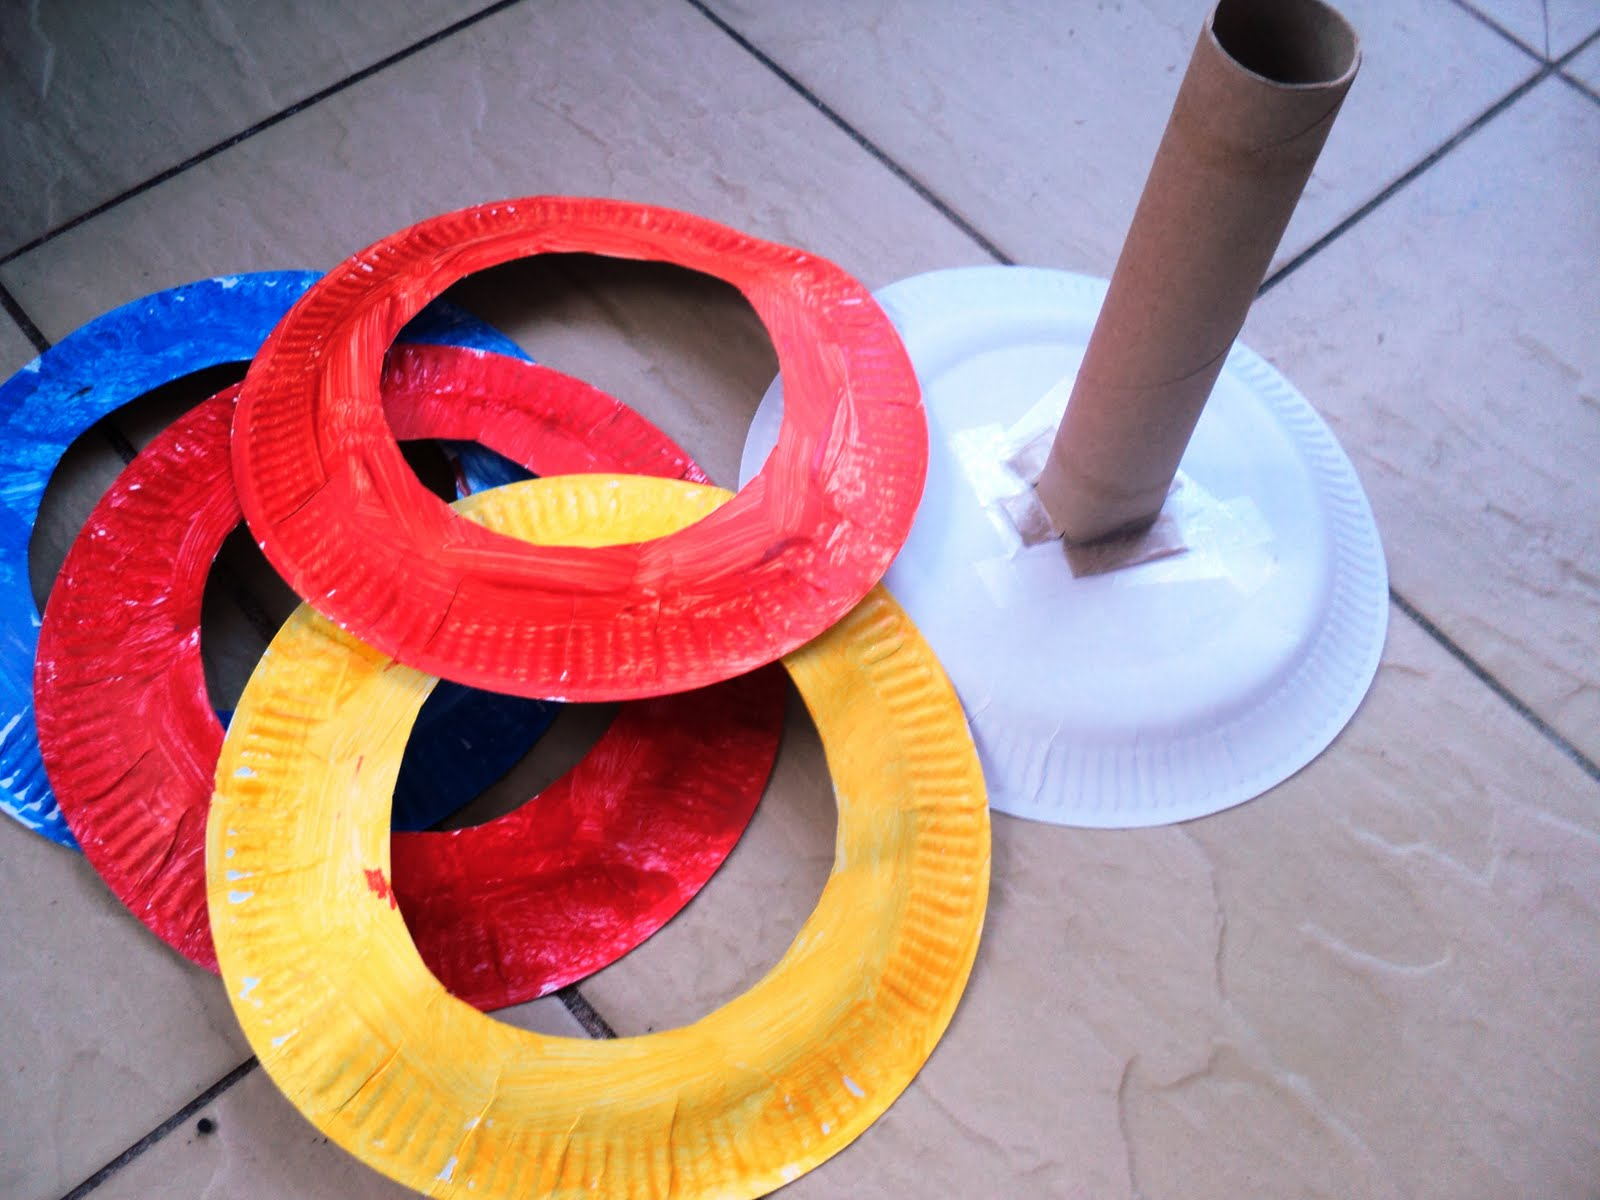 Ring toss games for kids - To Make The Stand I Just Cut Slits In The Bottom Of The Cardboard Tube And Flattened The Ends Then Taped It To The Reverse Side Of A Plate So It Would